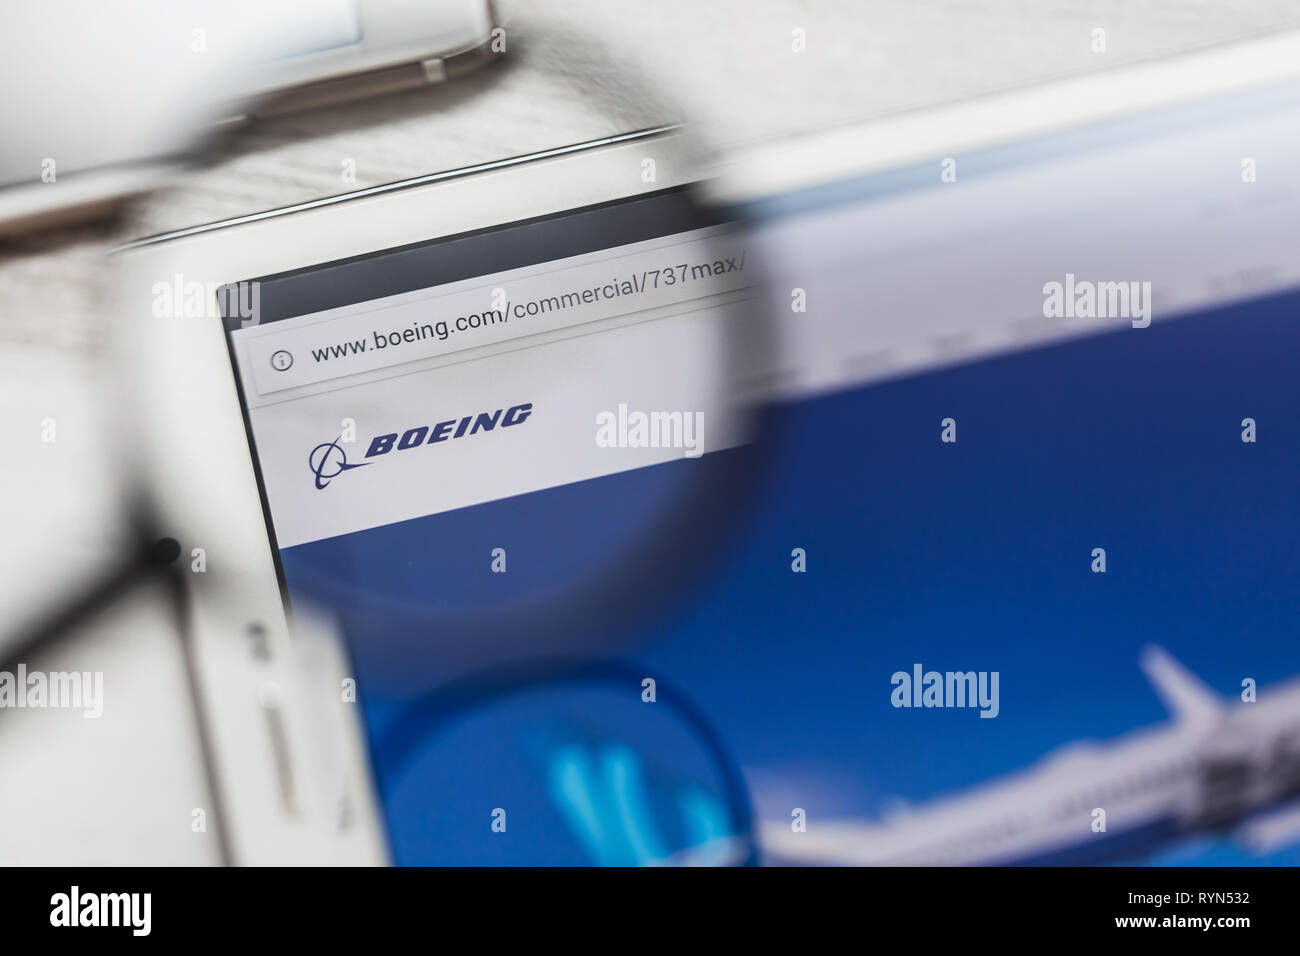 Bishoftu, Ethiopia - March 15, 2019: Boeing Company, 737 max, official website homepage under magnifying glass. Concept Boeing Company, 737 max - Stock Image